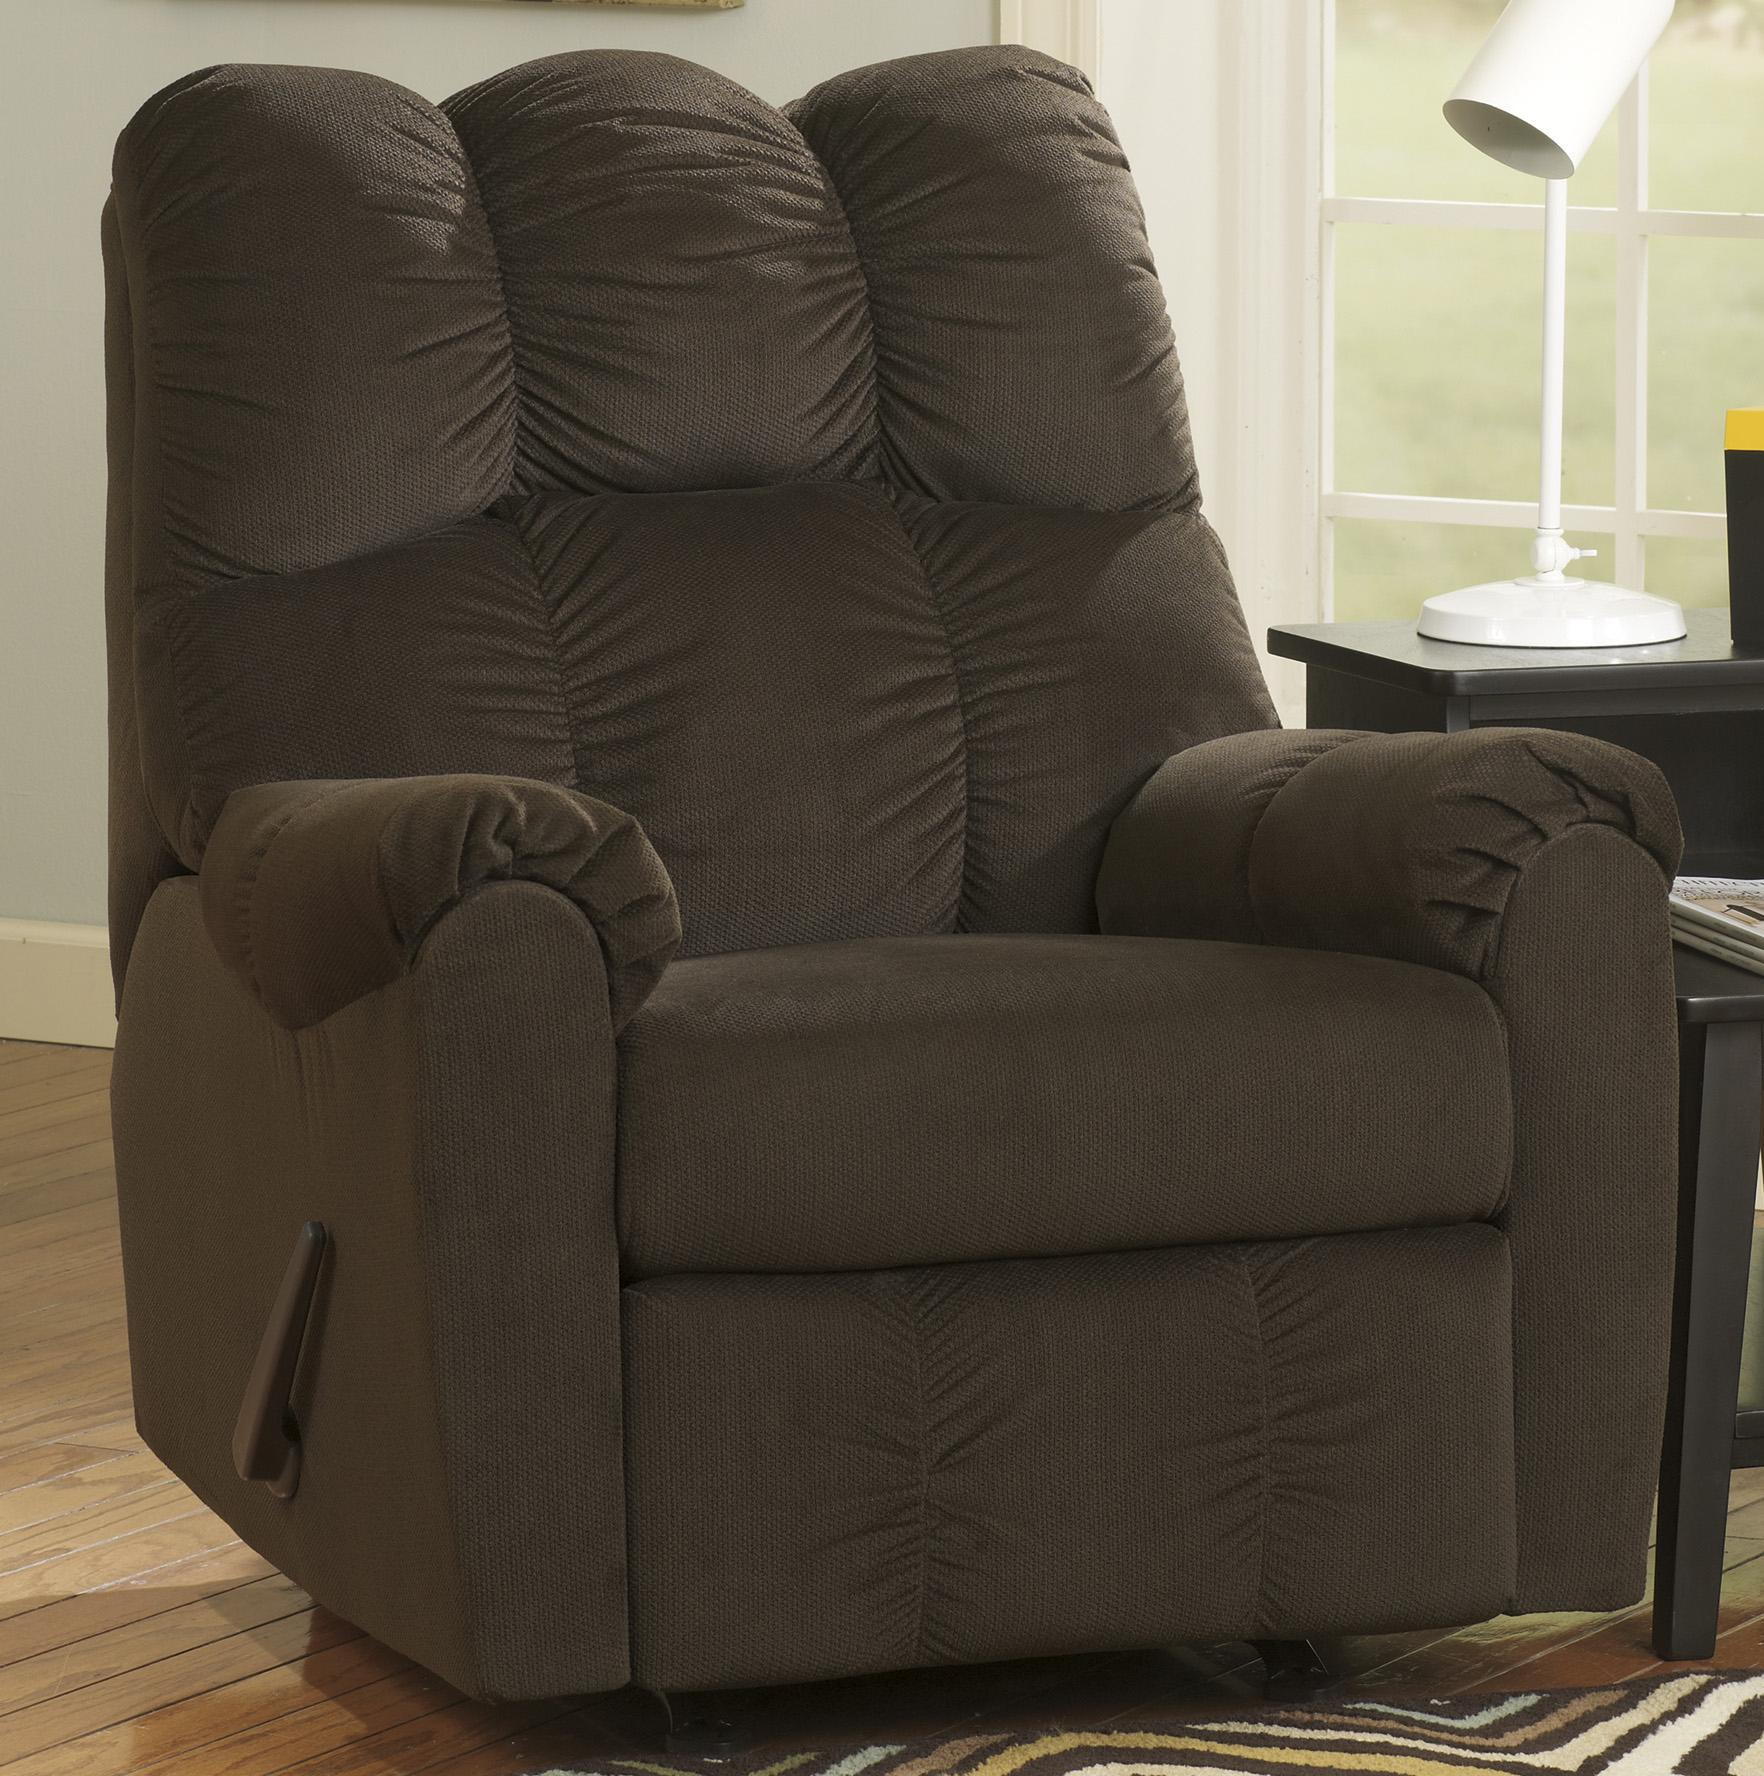 Signature Design by Ashley Raulo - Chocolate Rocker Recliner - Item Number: 1750025